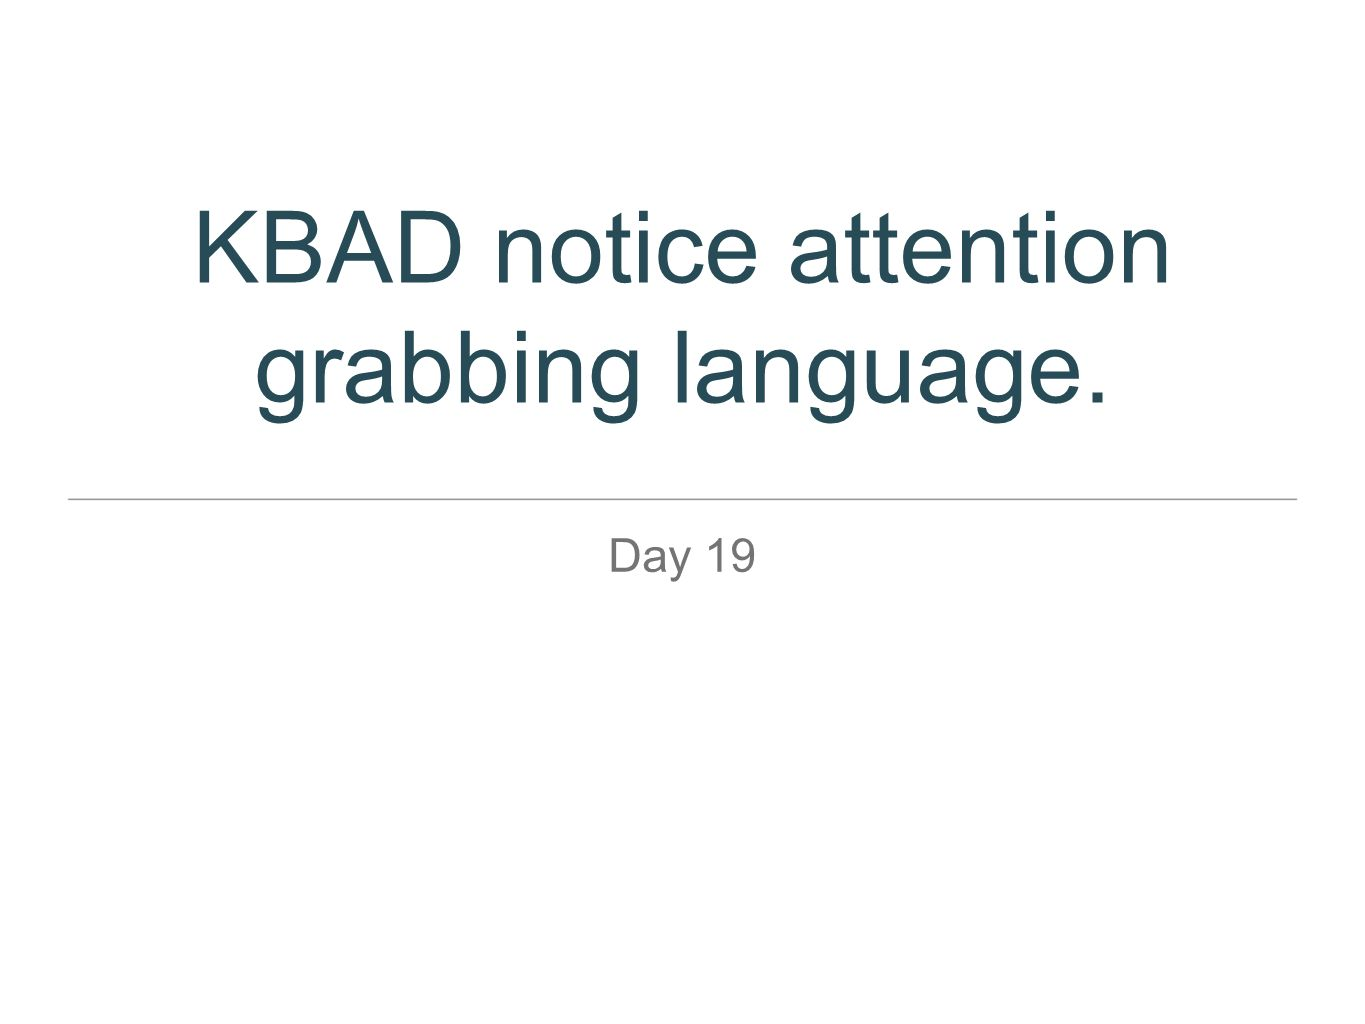 KBAD notice attention grabbing language.